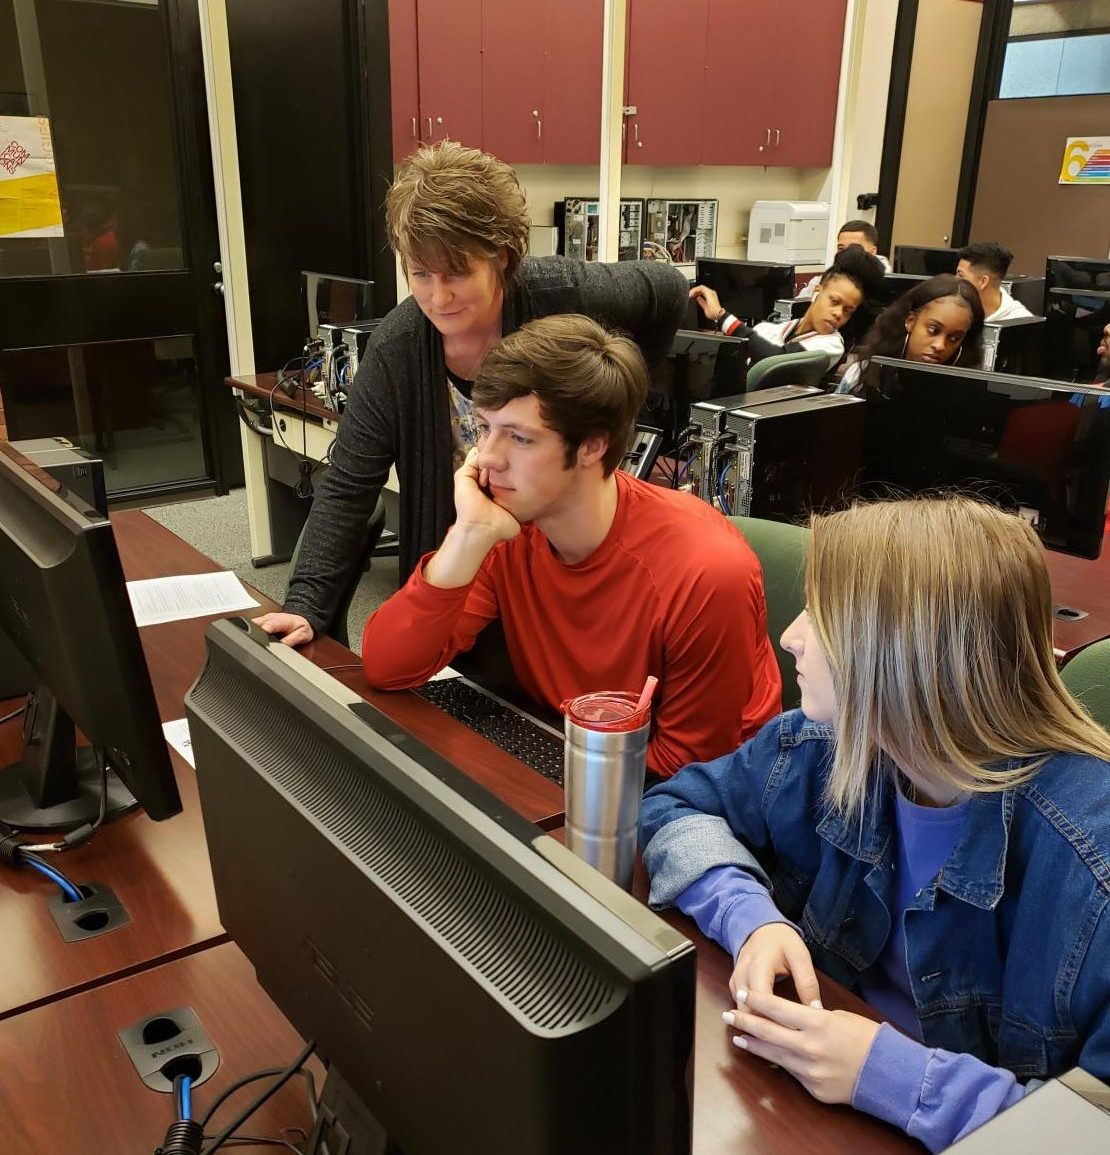 Business Instructor Nicci Denny assists students Brock Barkhurst and Emma Weseloh during the intro to business class at Allen Community College.